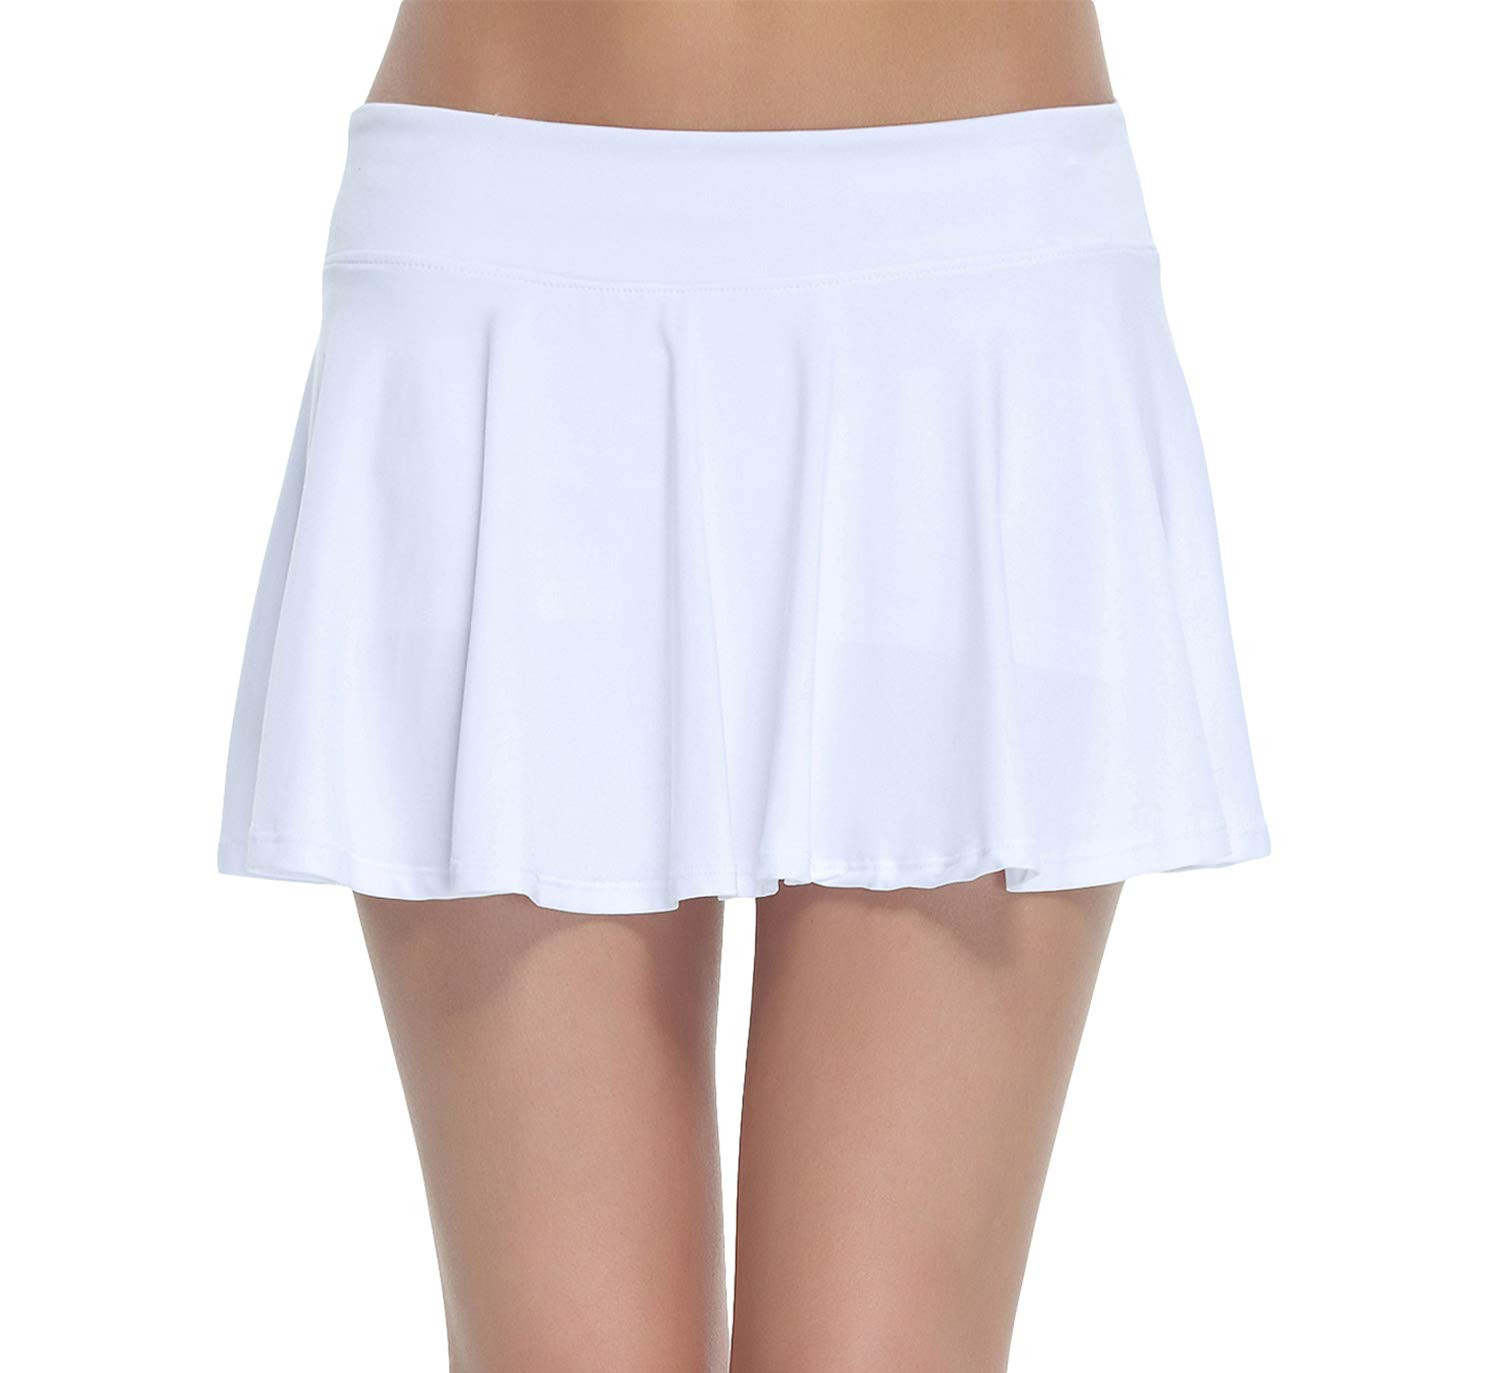 Women's Club Stretchy Tennis Skorts Pleated Cheerleader Skirt(White,XS)